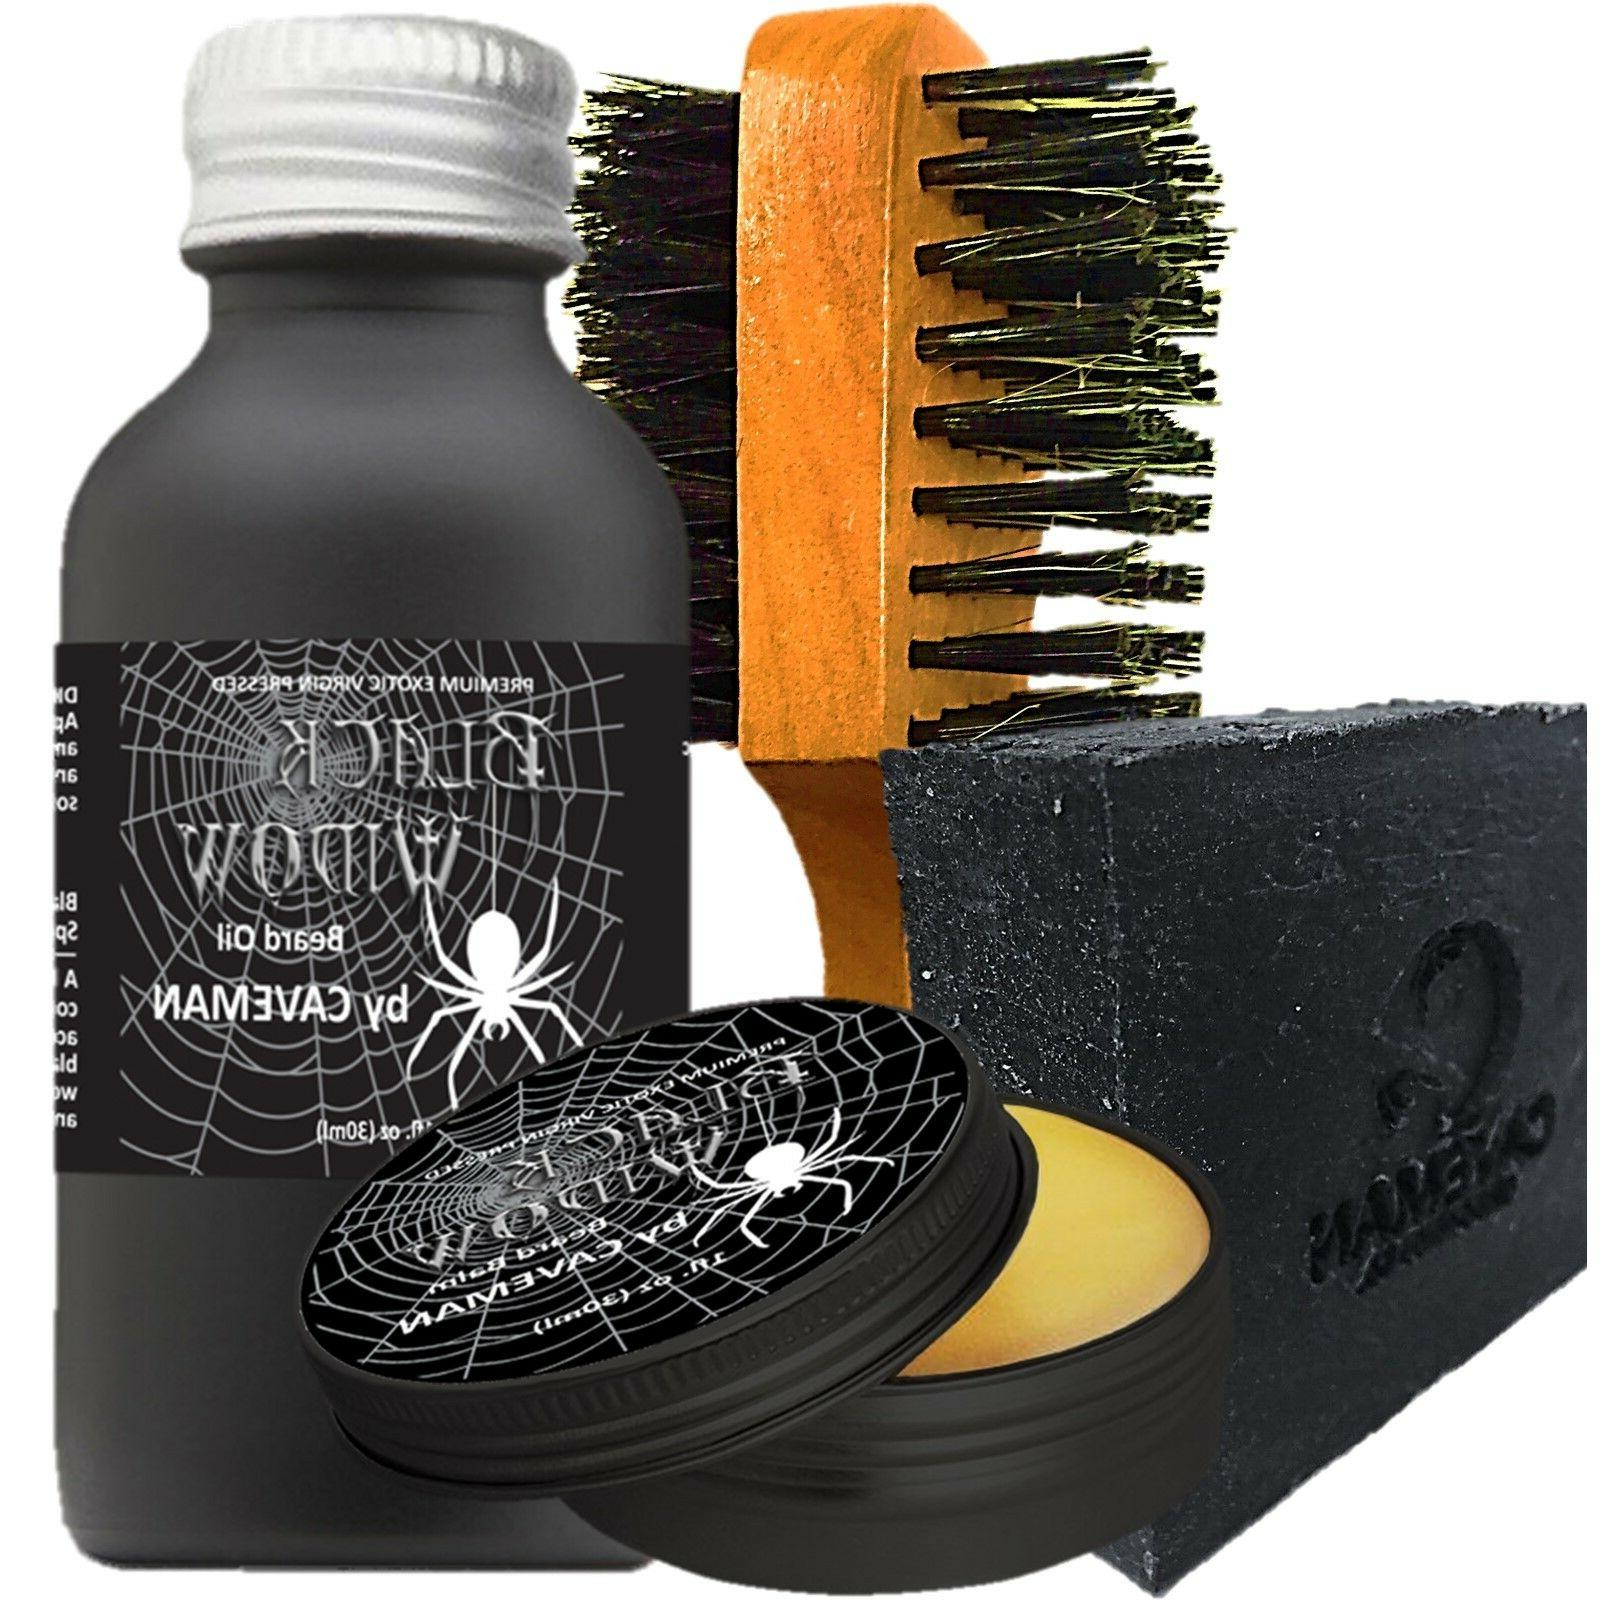 Hand Crafted Caveman® Beard Oil Gift Set Kit Beard Oil Hair Care & Styling Balm Free Beard Brush Health & Beauty